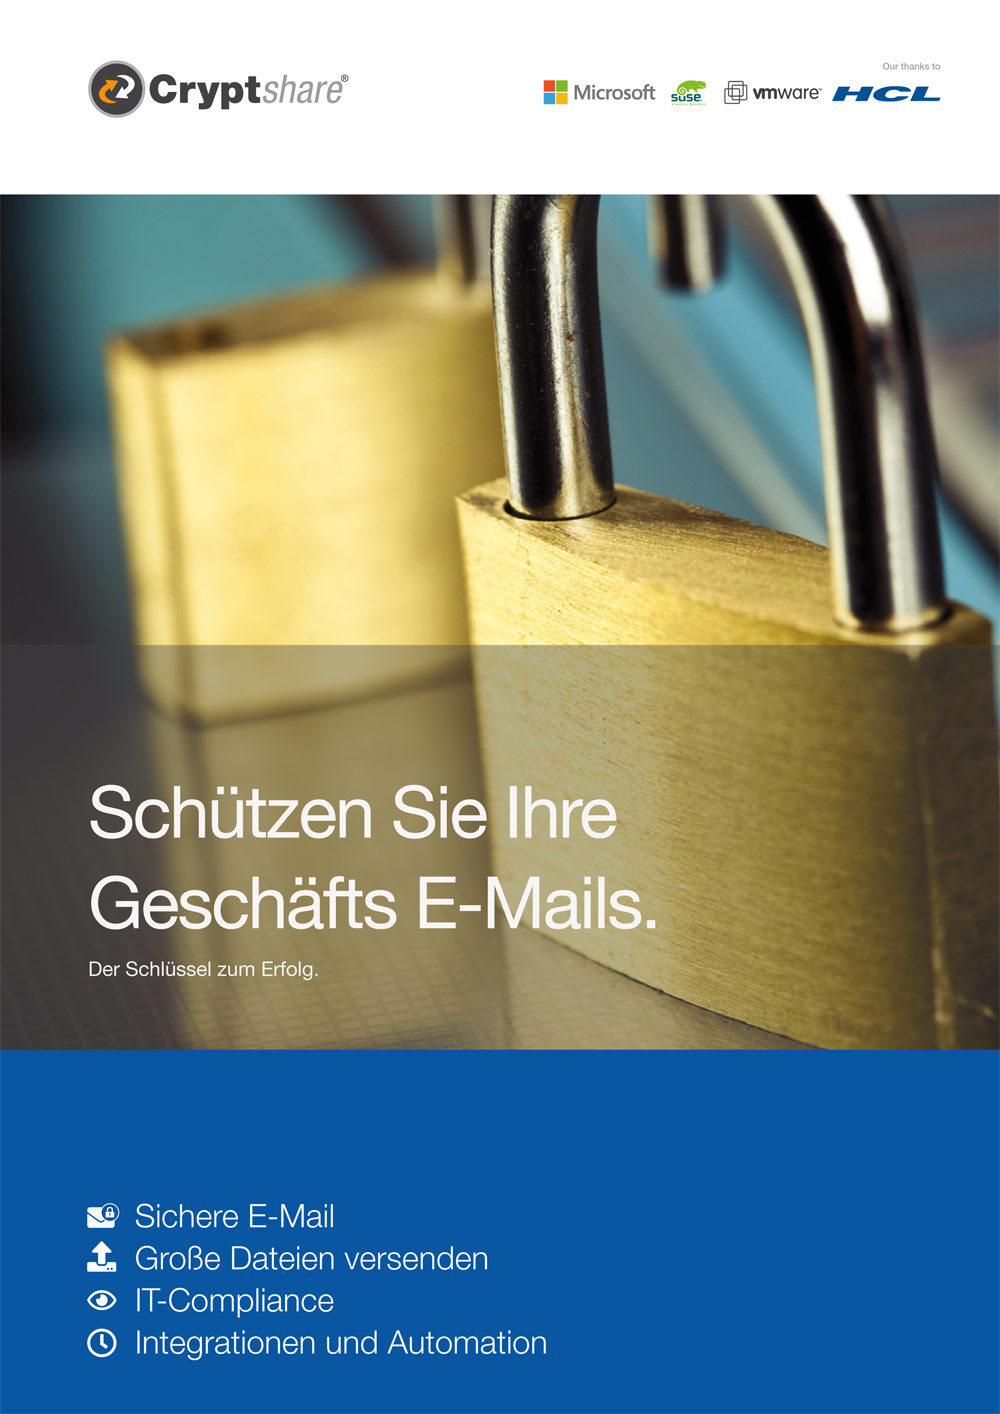 Cryptshare-The_key_for_secure_business_e-mails-05282019-DACH-DE-web